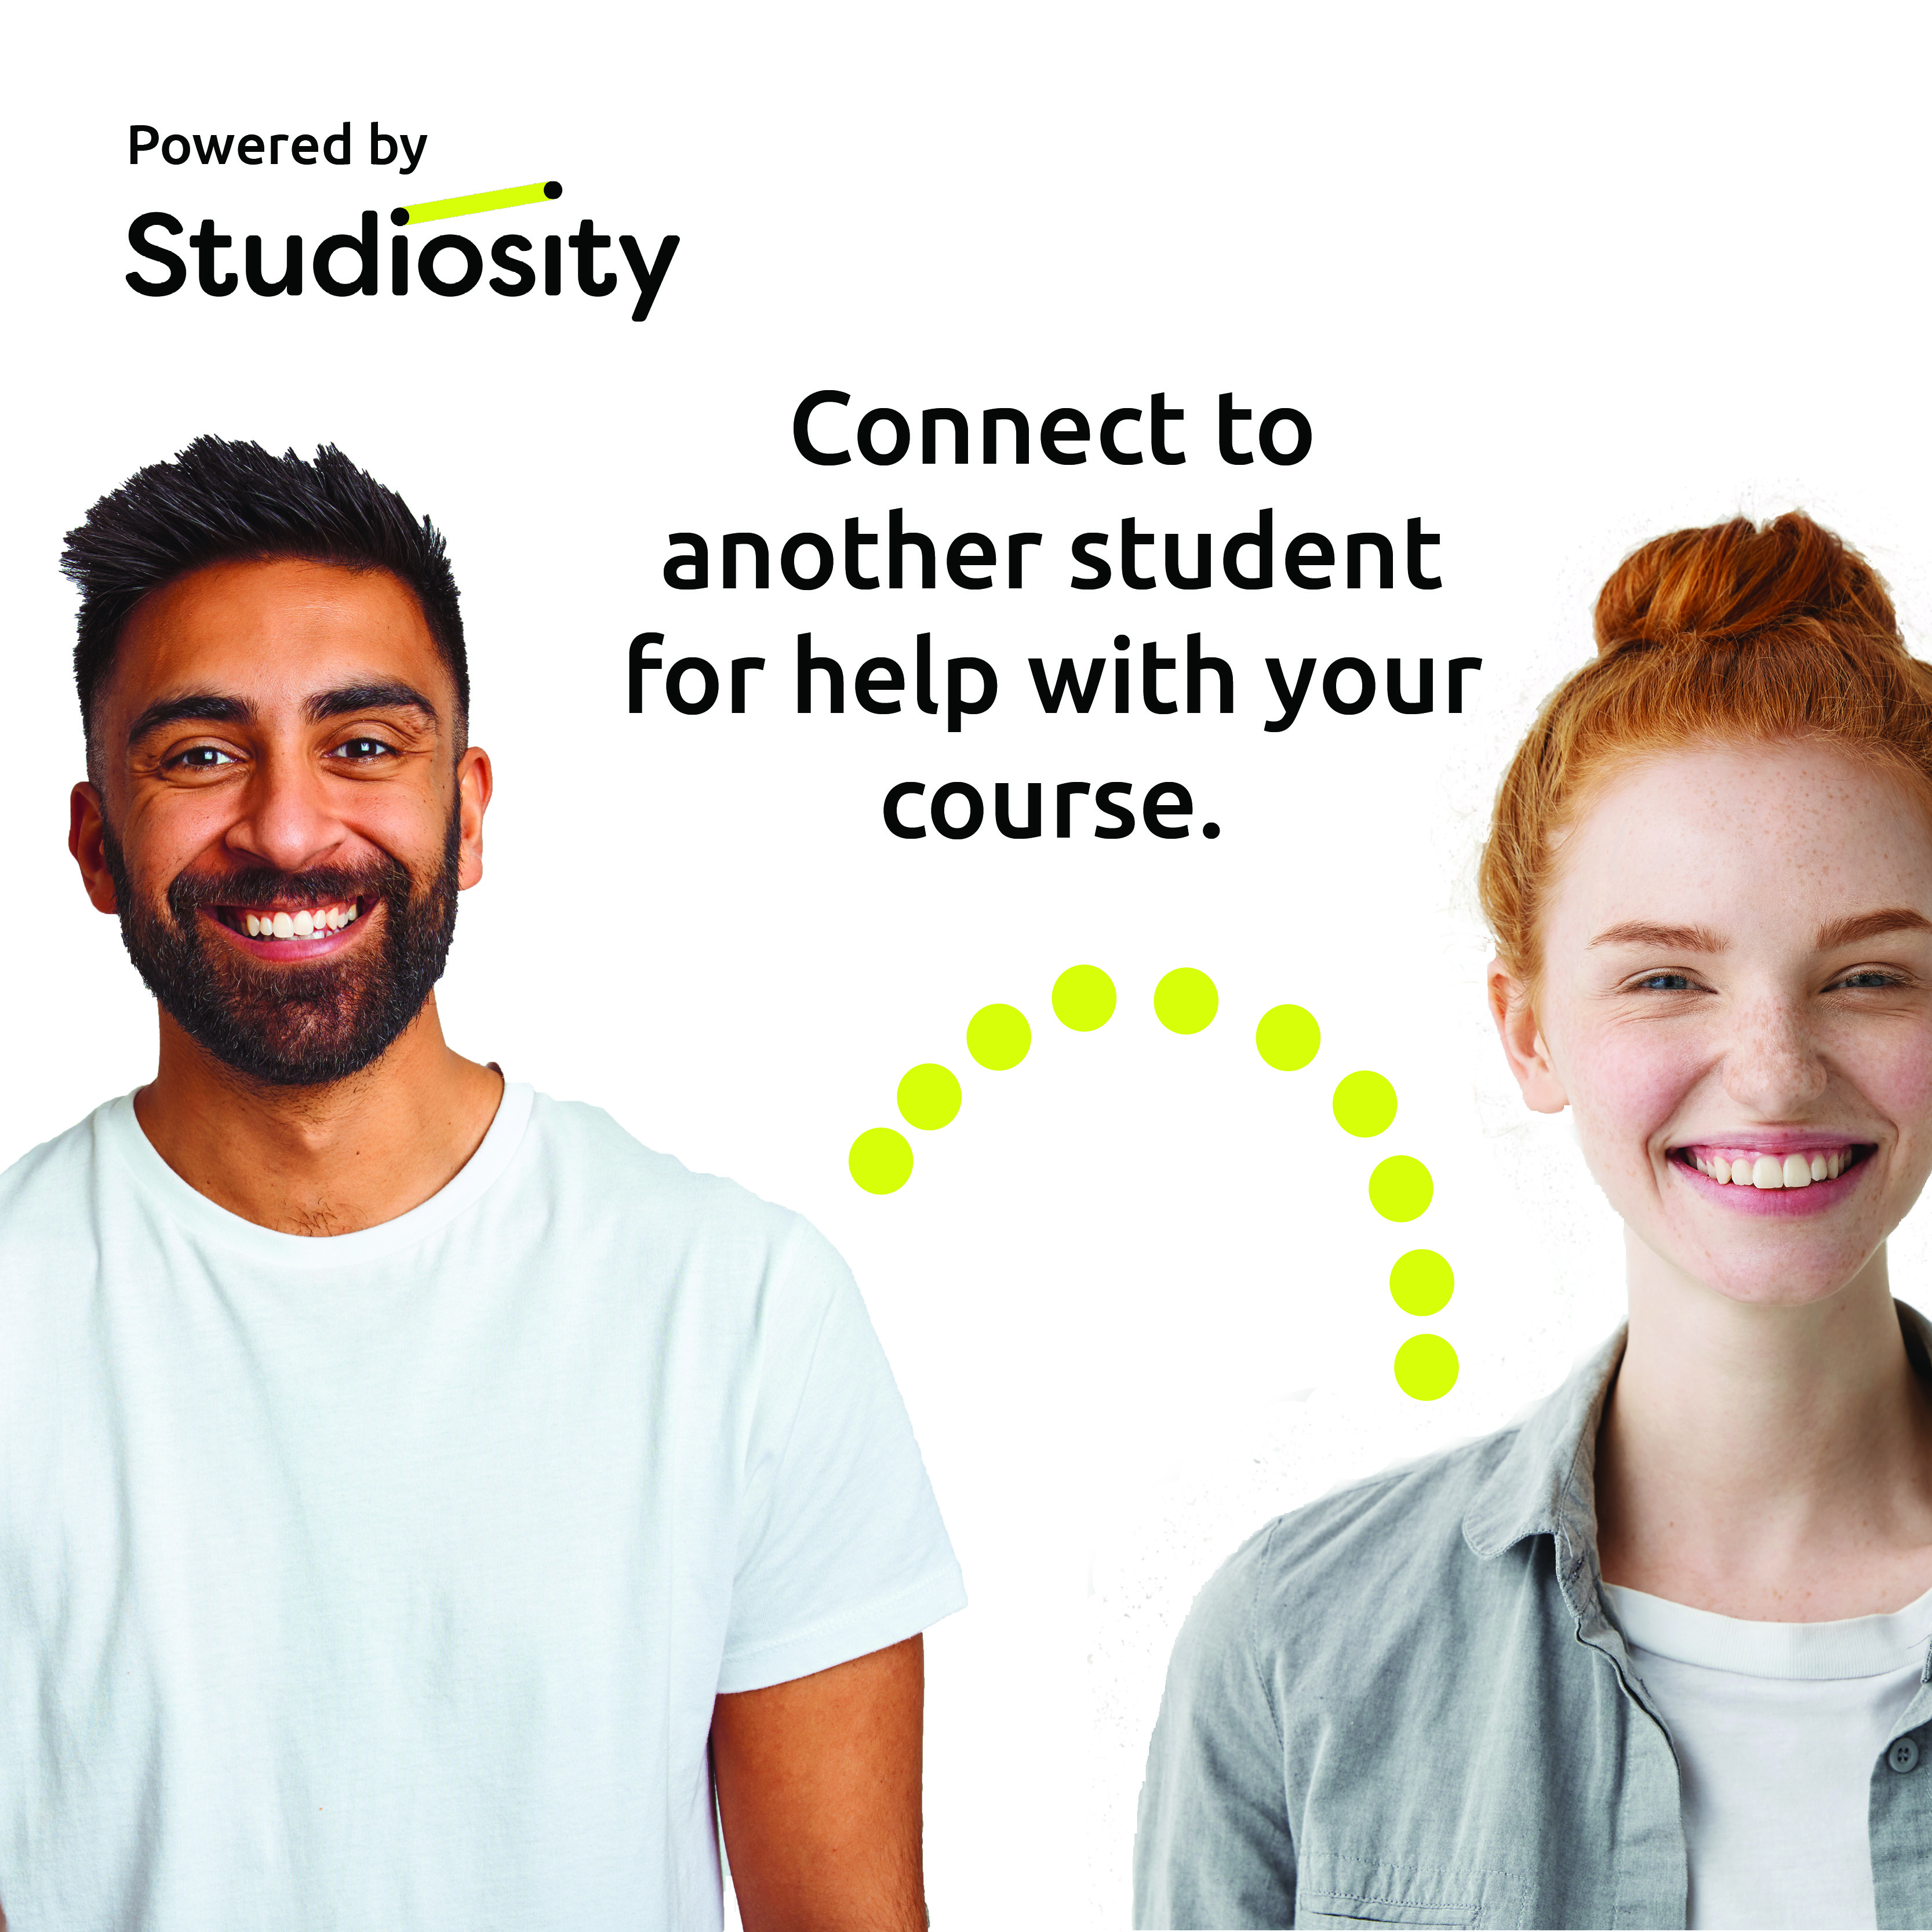 Have you tried Student Connect yet?